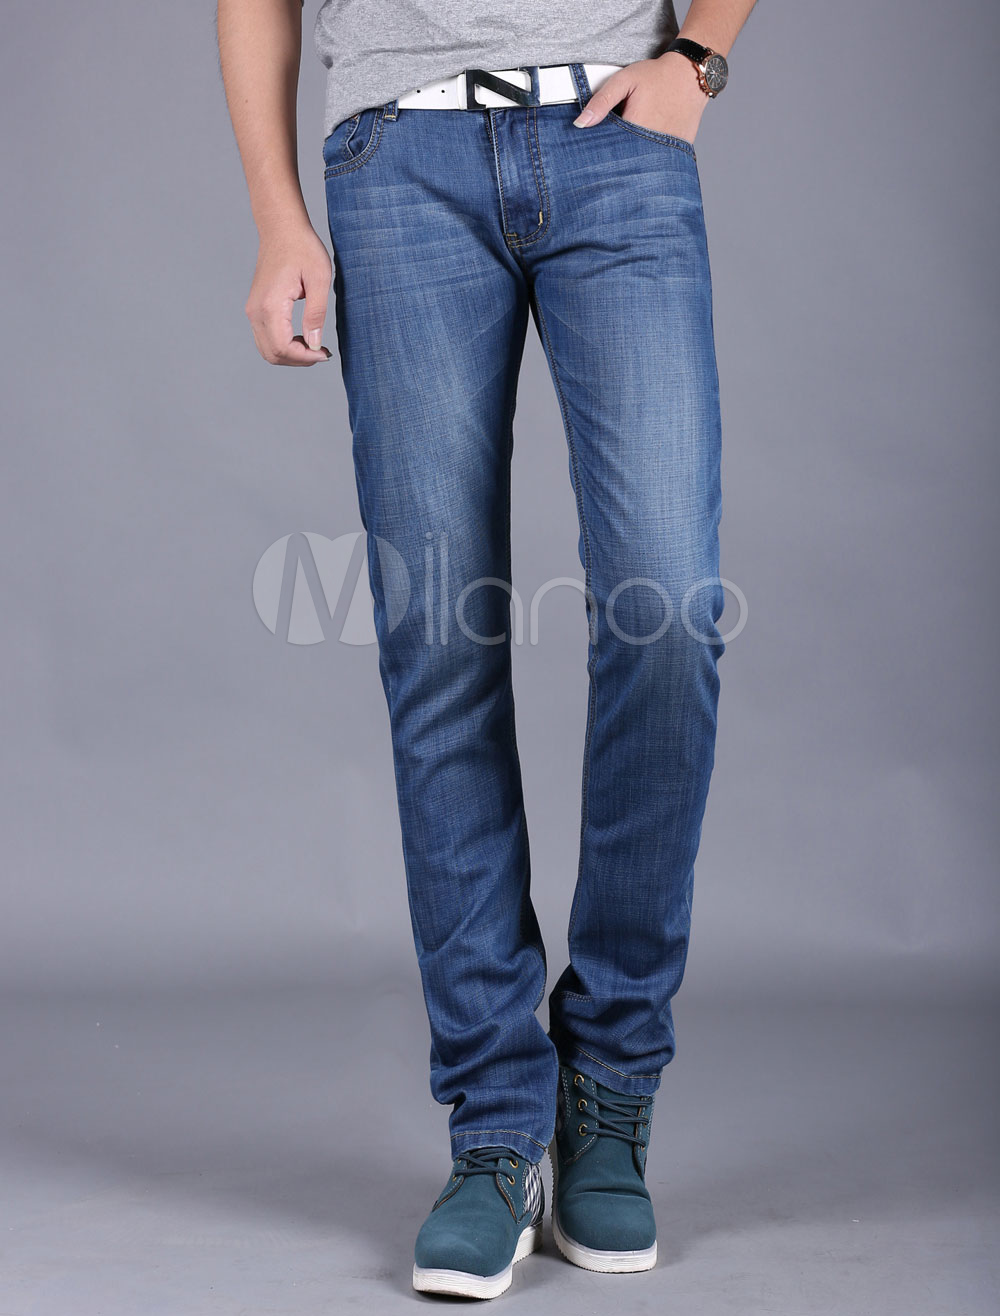 Buy Blue Jeans Straight Chic Denim Slim Fit Jeans for Men for $26.59 in Milanoo store